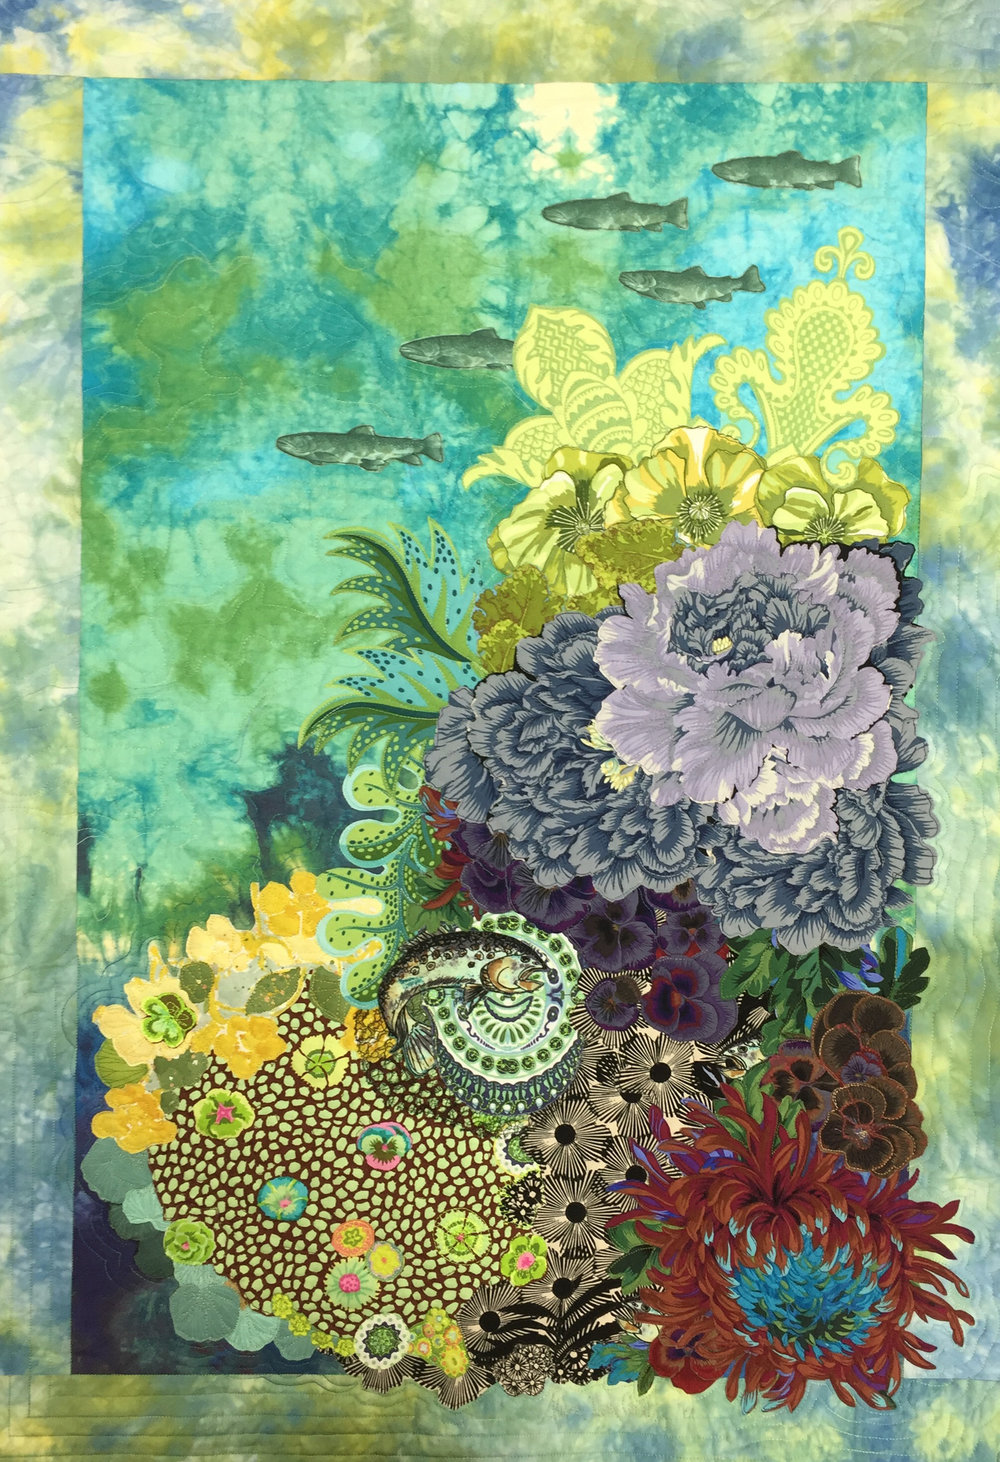 "underwater illusion - 24"" x 36""Inspired by bold floral printed fabrics and underwater experiences I set out to interpret my scuba diving experience underwater. Mixing hand dyed fabrics and commercial motif patterns designed and collaged an ideal underwater garden."